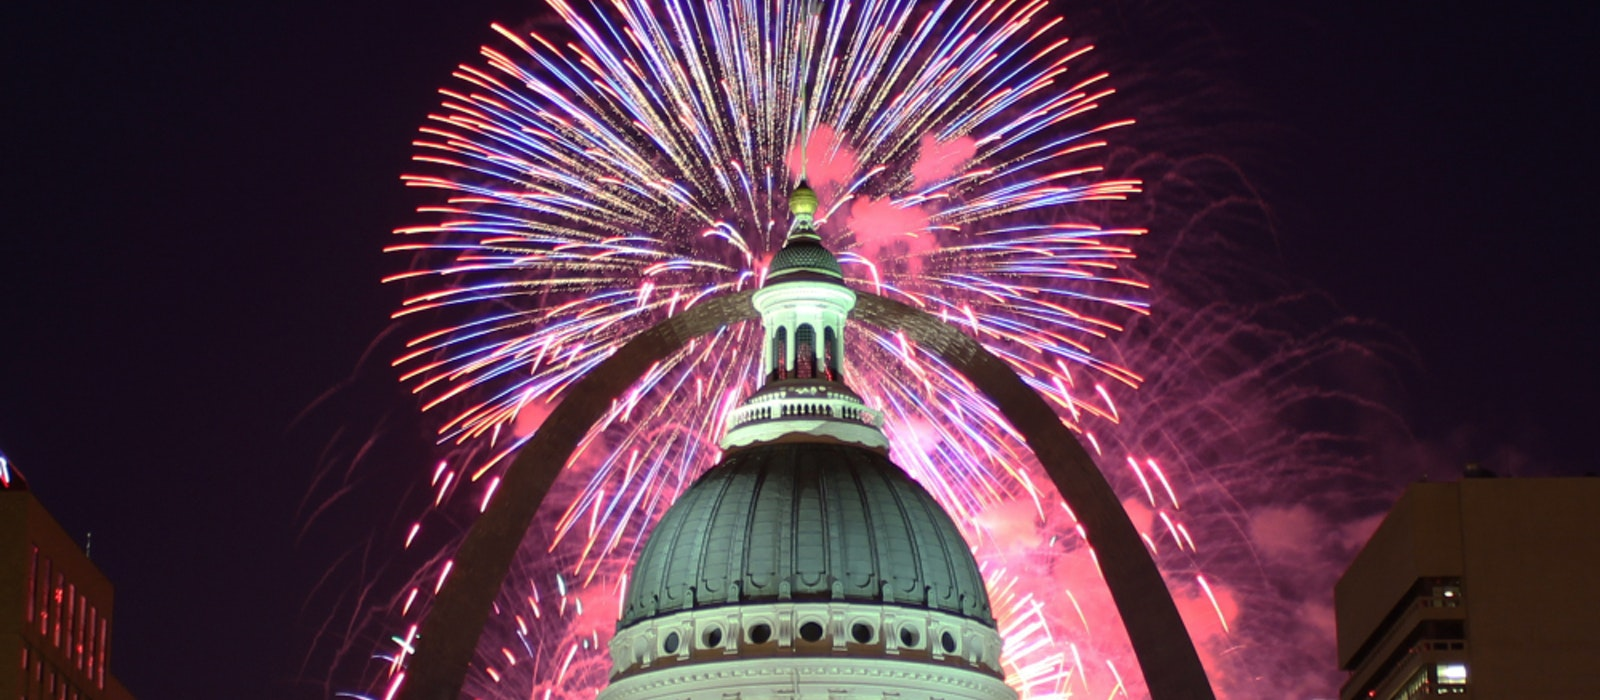 Spend the Fourth of July with fireworks above the Arch in St. Louis, Missouri.